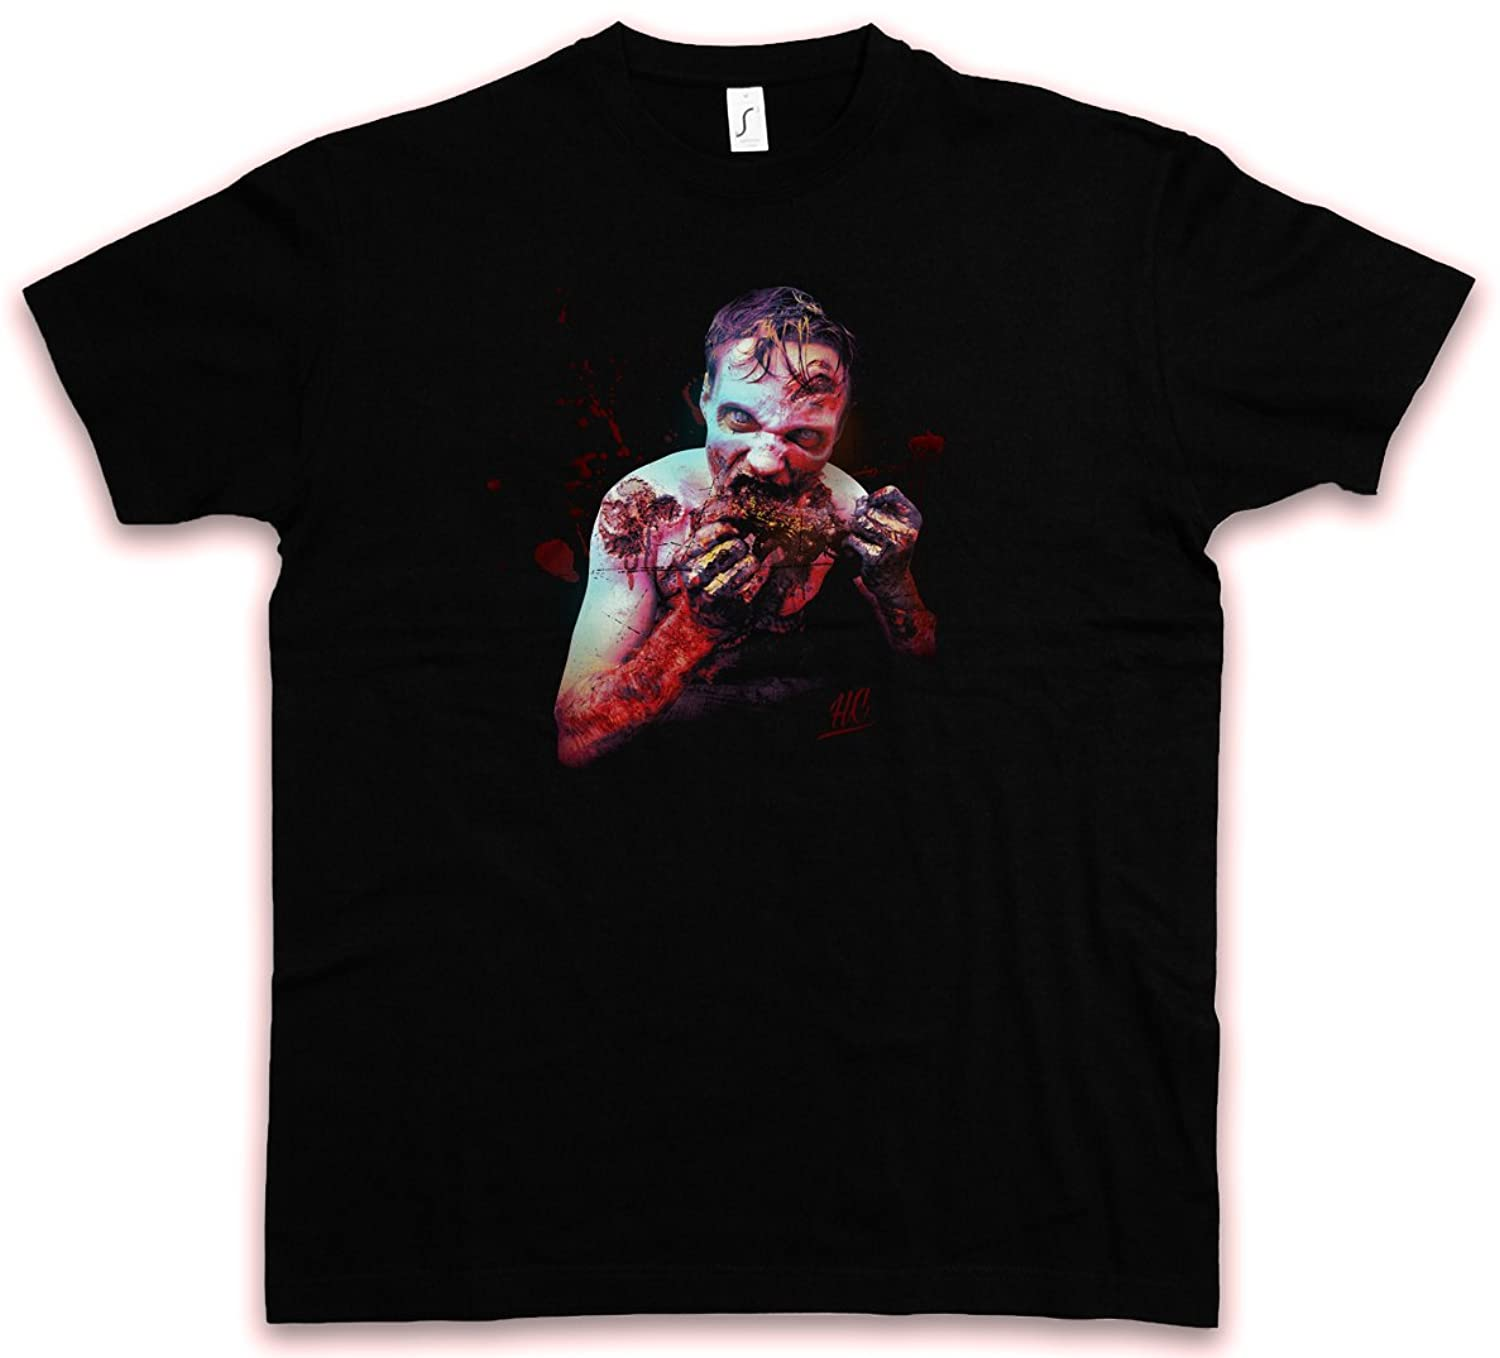 HATE ZOMBIE I HC HATE COUTURE T-SHIRT - The Gothic Splatter Gore Gothic Goth Walking Vampire Evil Dead Shirt Sizes S - 5XL